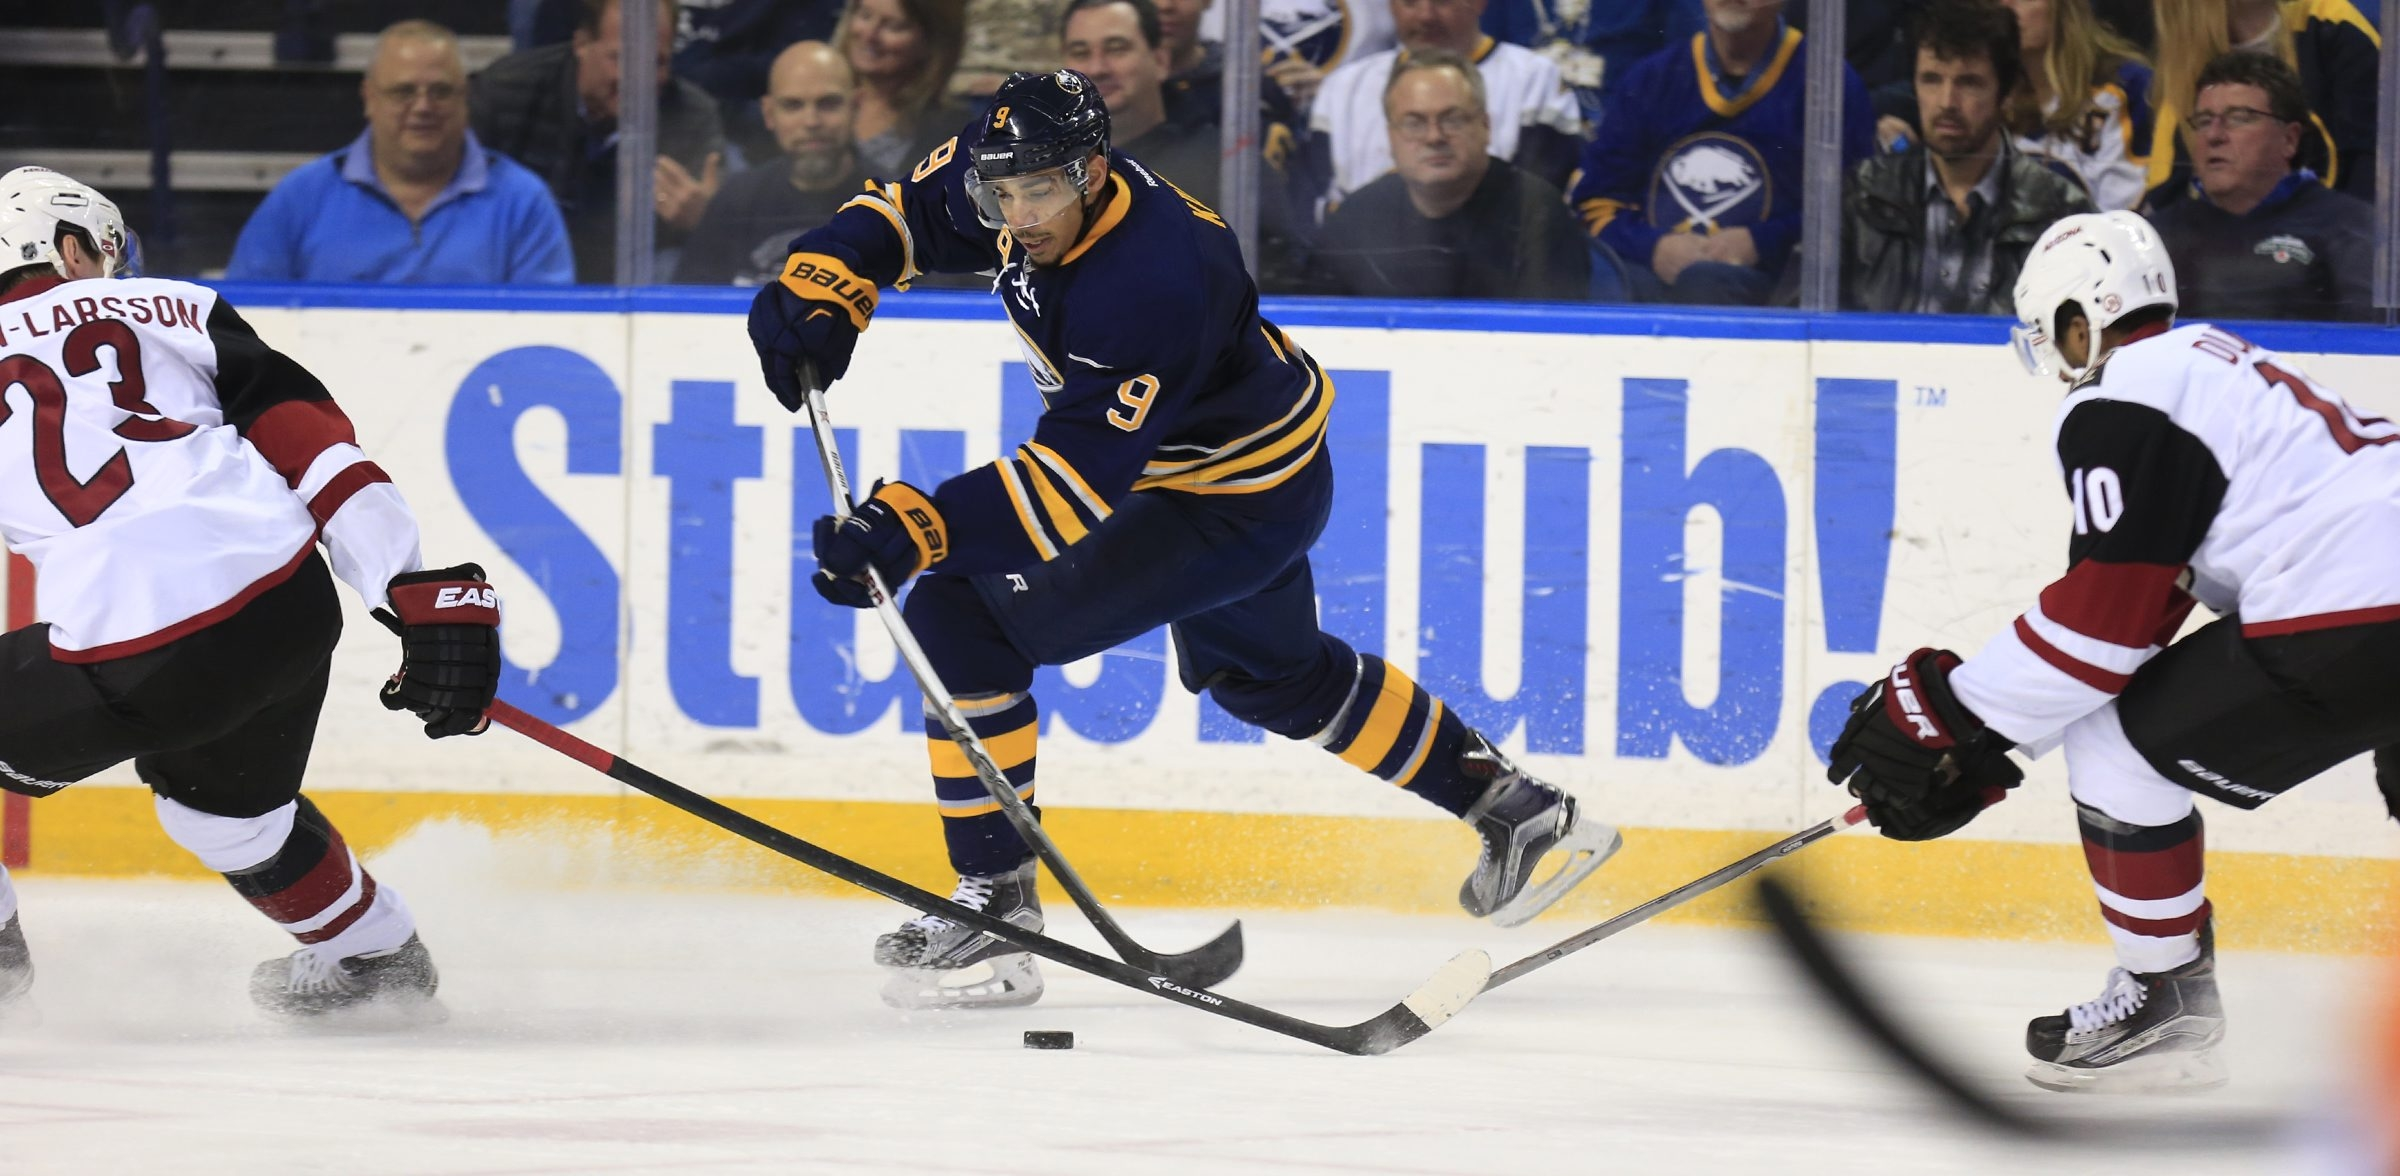 Sabres winger Evander Kane, who scored two goals for the second straight game, moves the puck between Coyotes players.